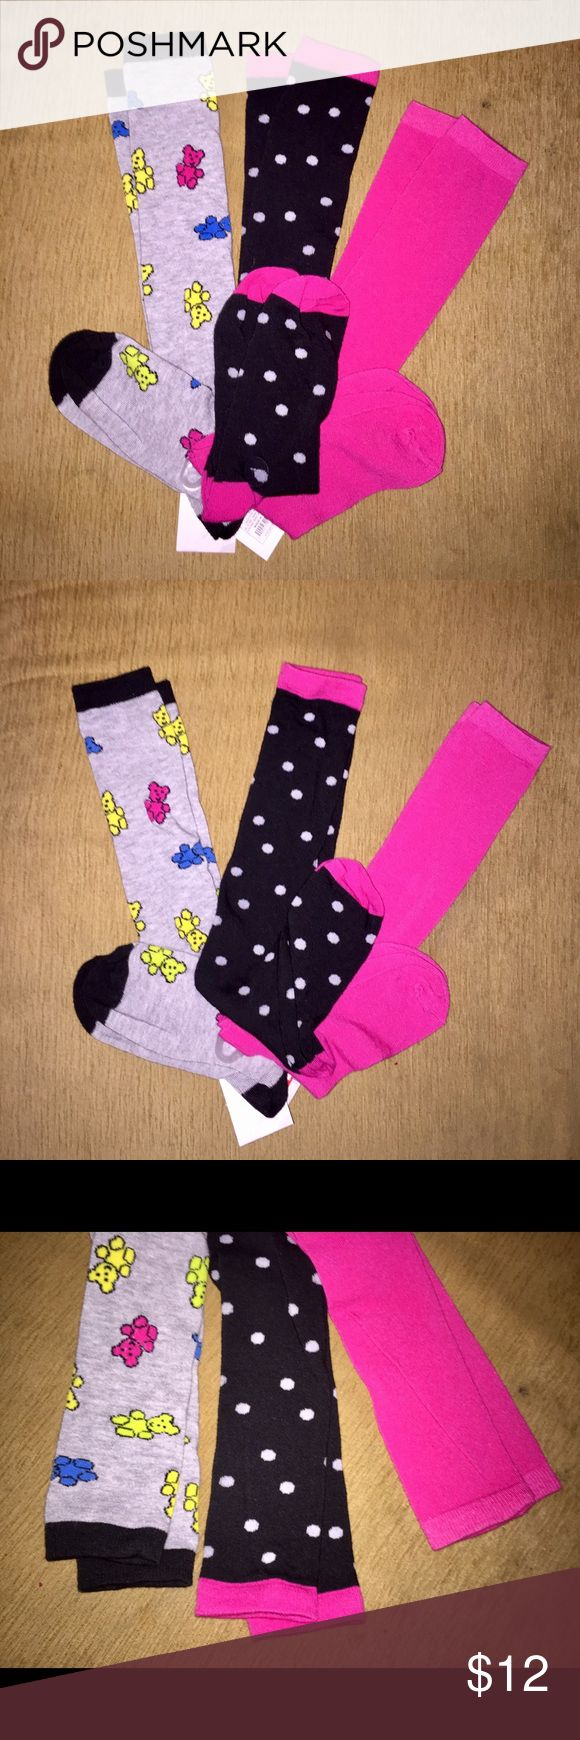 Knee Socks Bundle Brand new sassy knee sock trio: 1) gray w/ neon blue, yellow & pink Grateful Dead-inspired dancing bears, black toe, heel, cuff. 2) black w/ white polka dots, hot pink toe, heel, cuff. 3) solid hot pink. All have stretchy ribbed cuffs & a nice, soft flat-knit feel. Tags attached. I have way too many pairs already! Accessories Hosiery & Socks